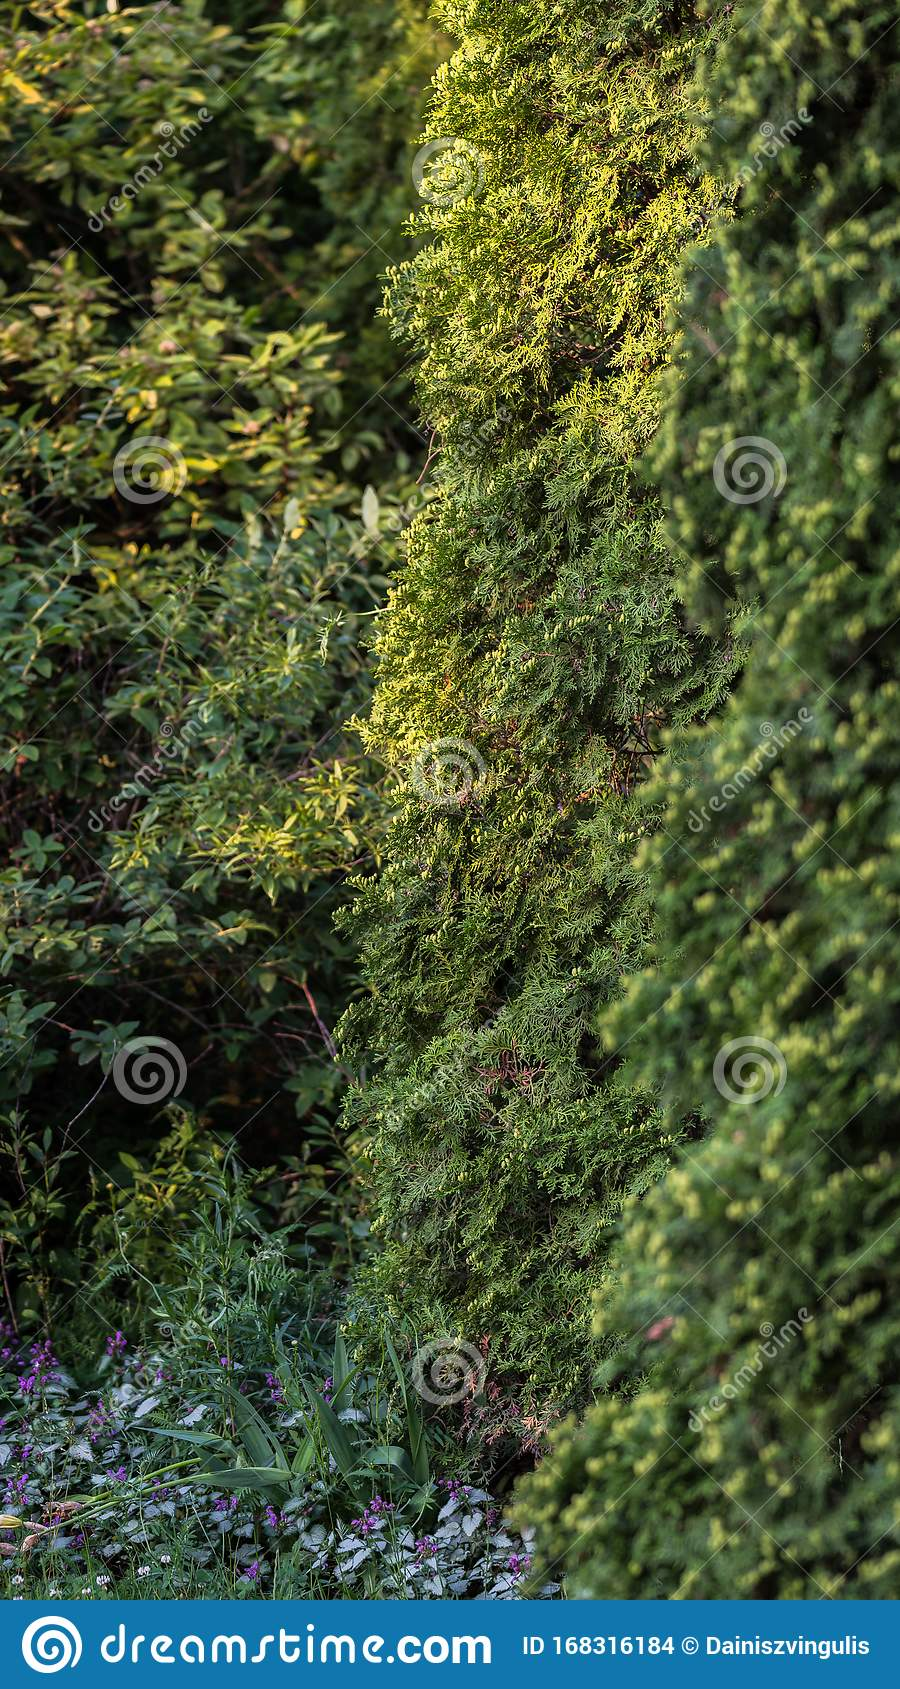 Garden Design With Ornamental Trees Stock Photo Image Of Scenic Summer 168316184